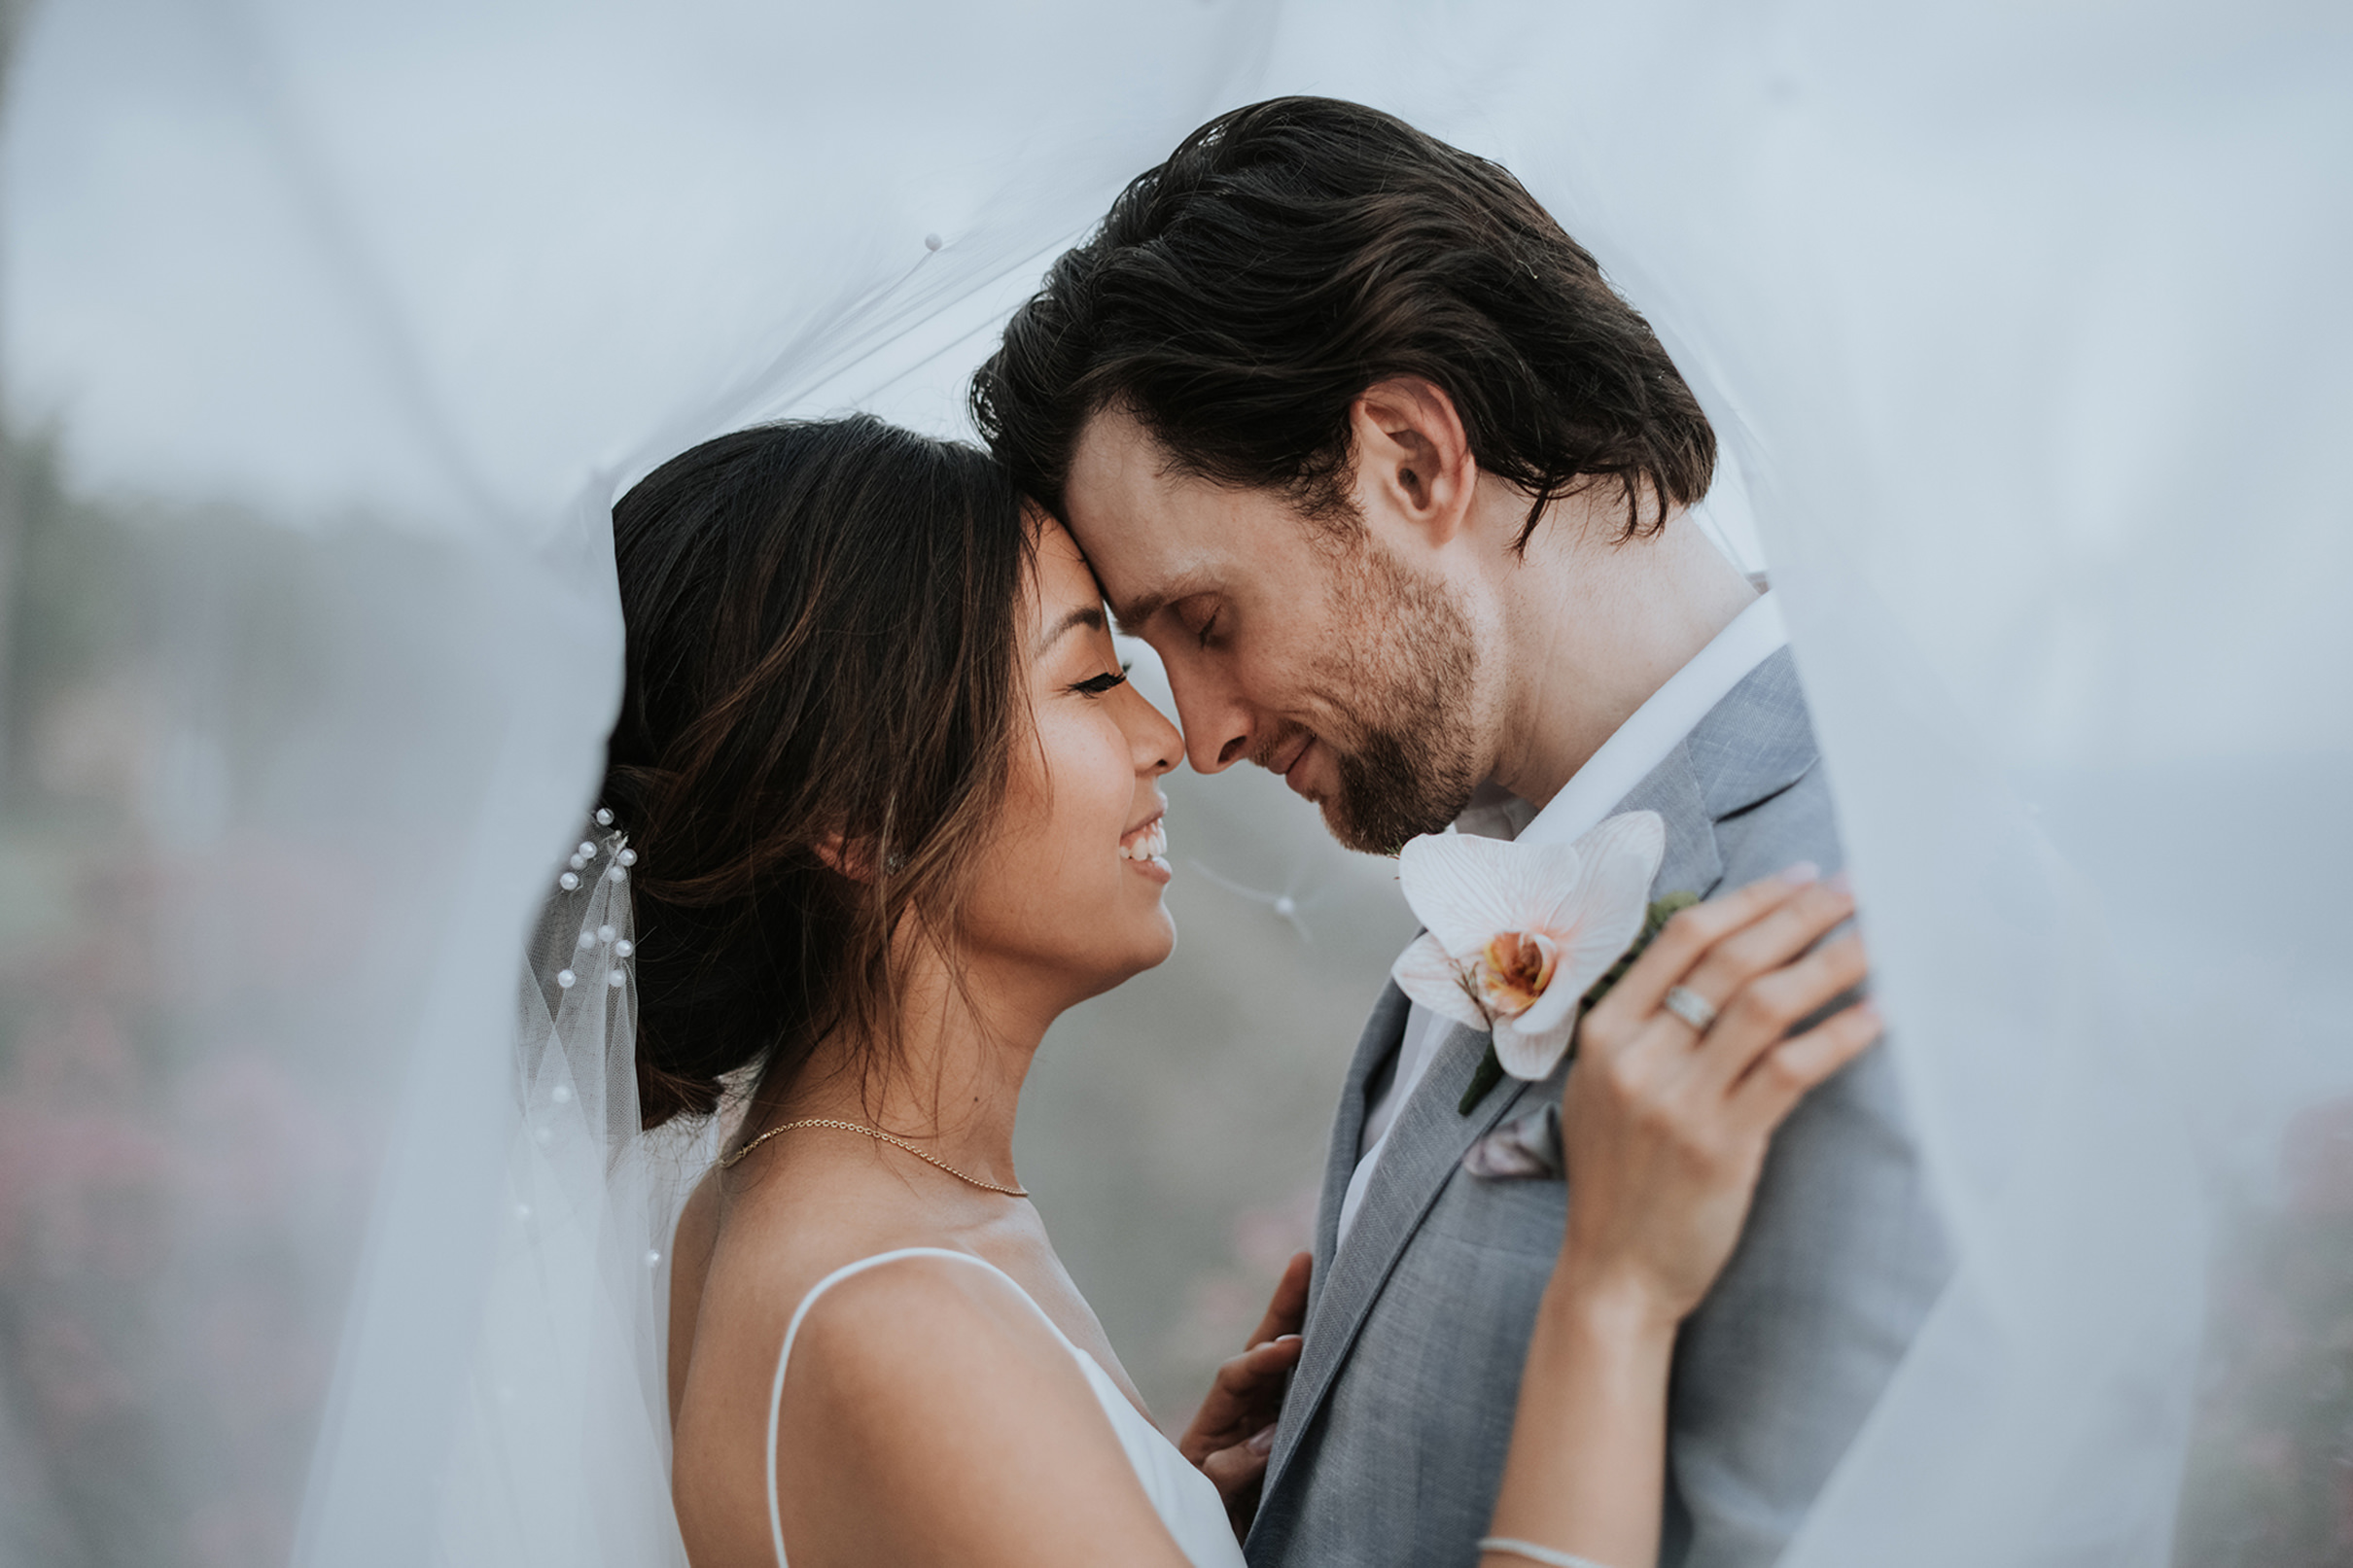 Classic bride and groom under veil. Photo by MunKeat Photography Studio